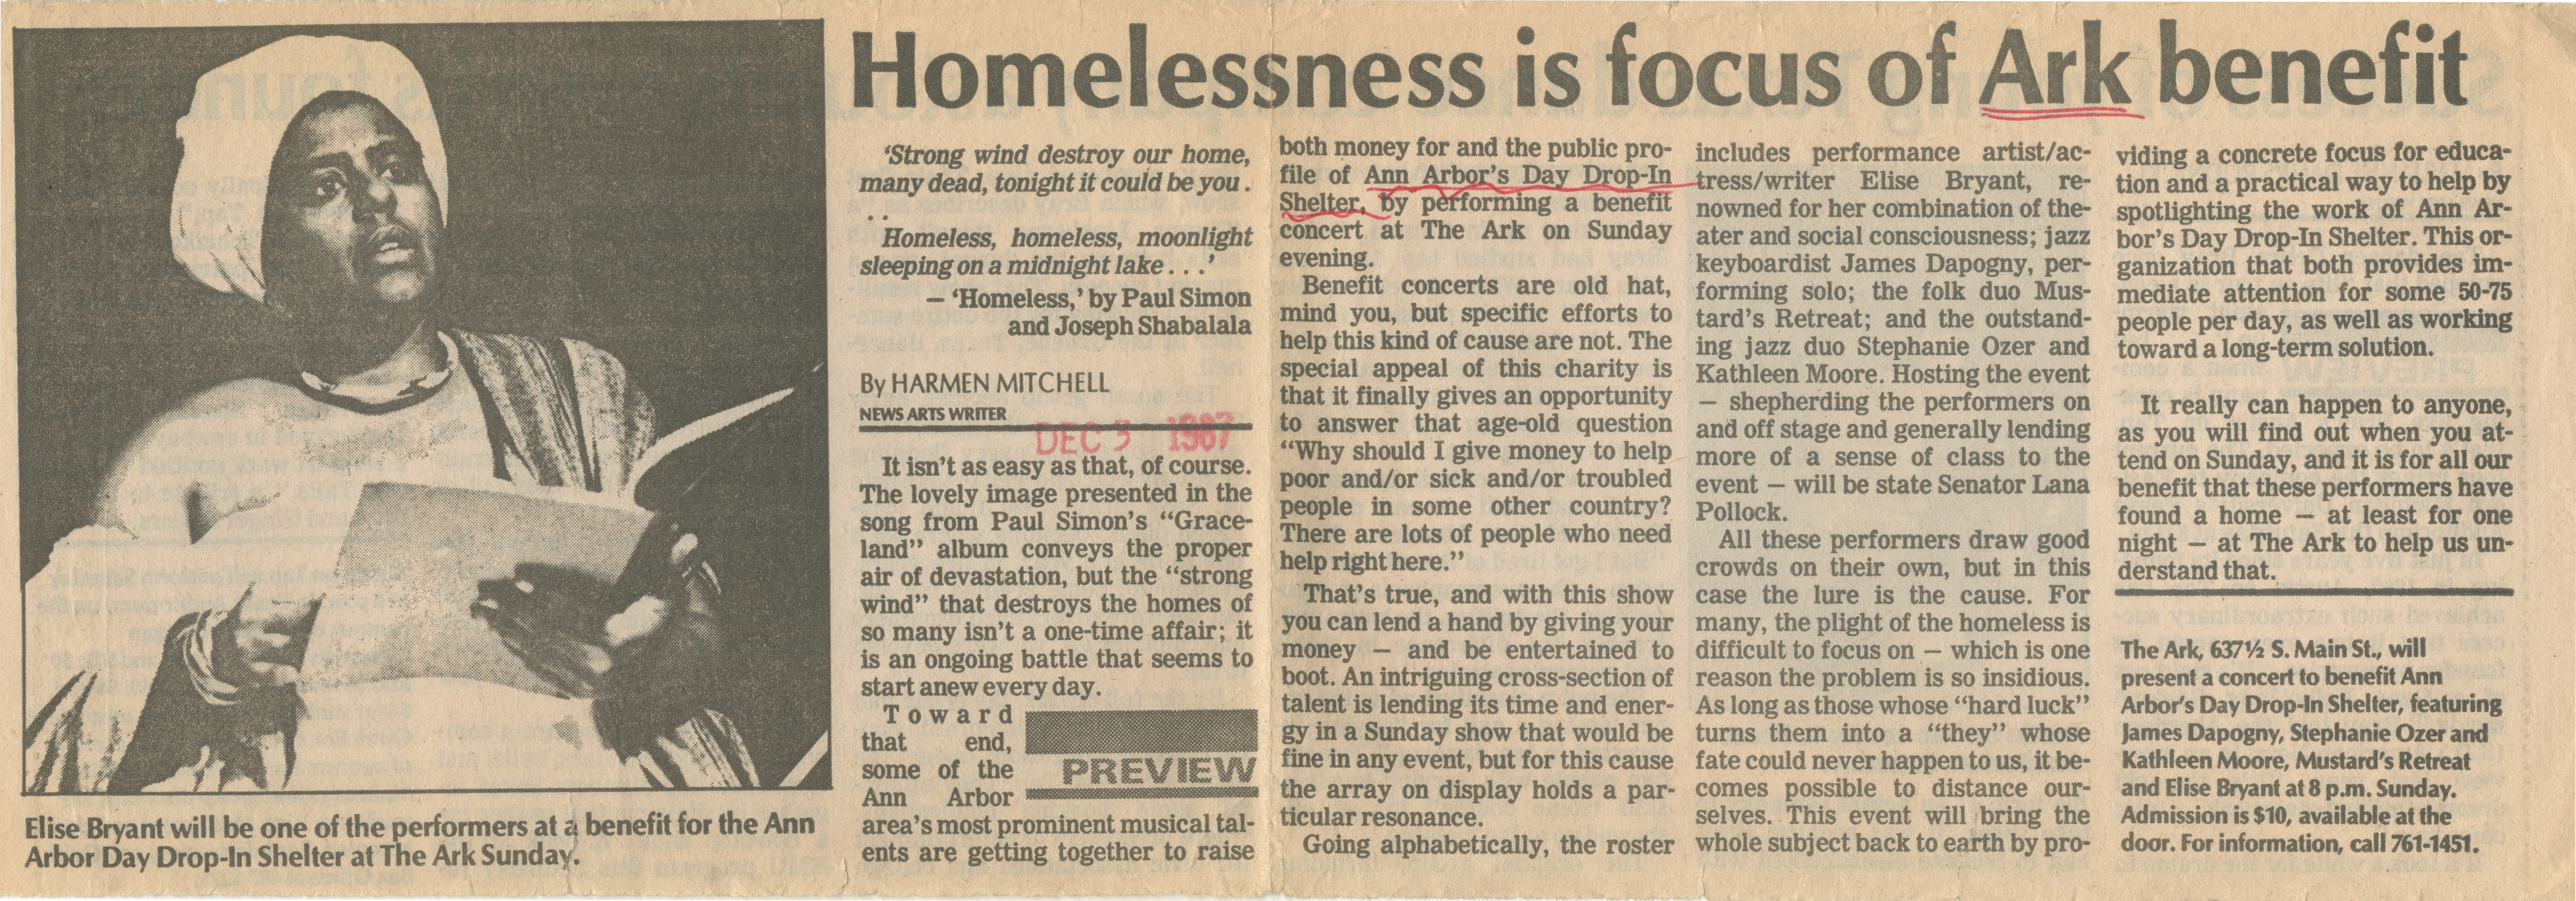 Homelessness Is Focus Of Ark Benefit image